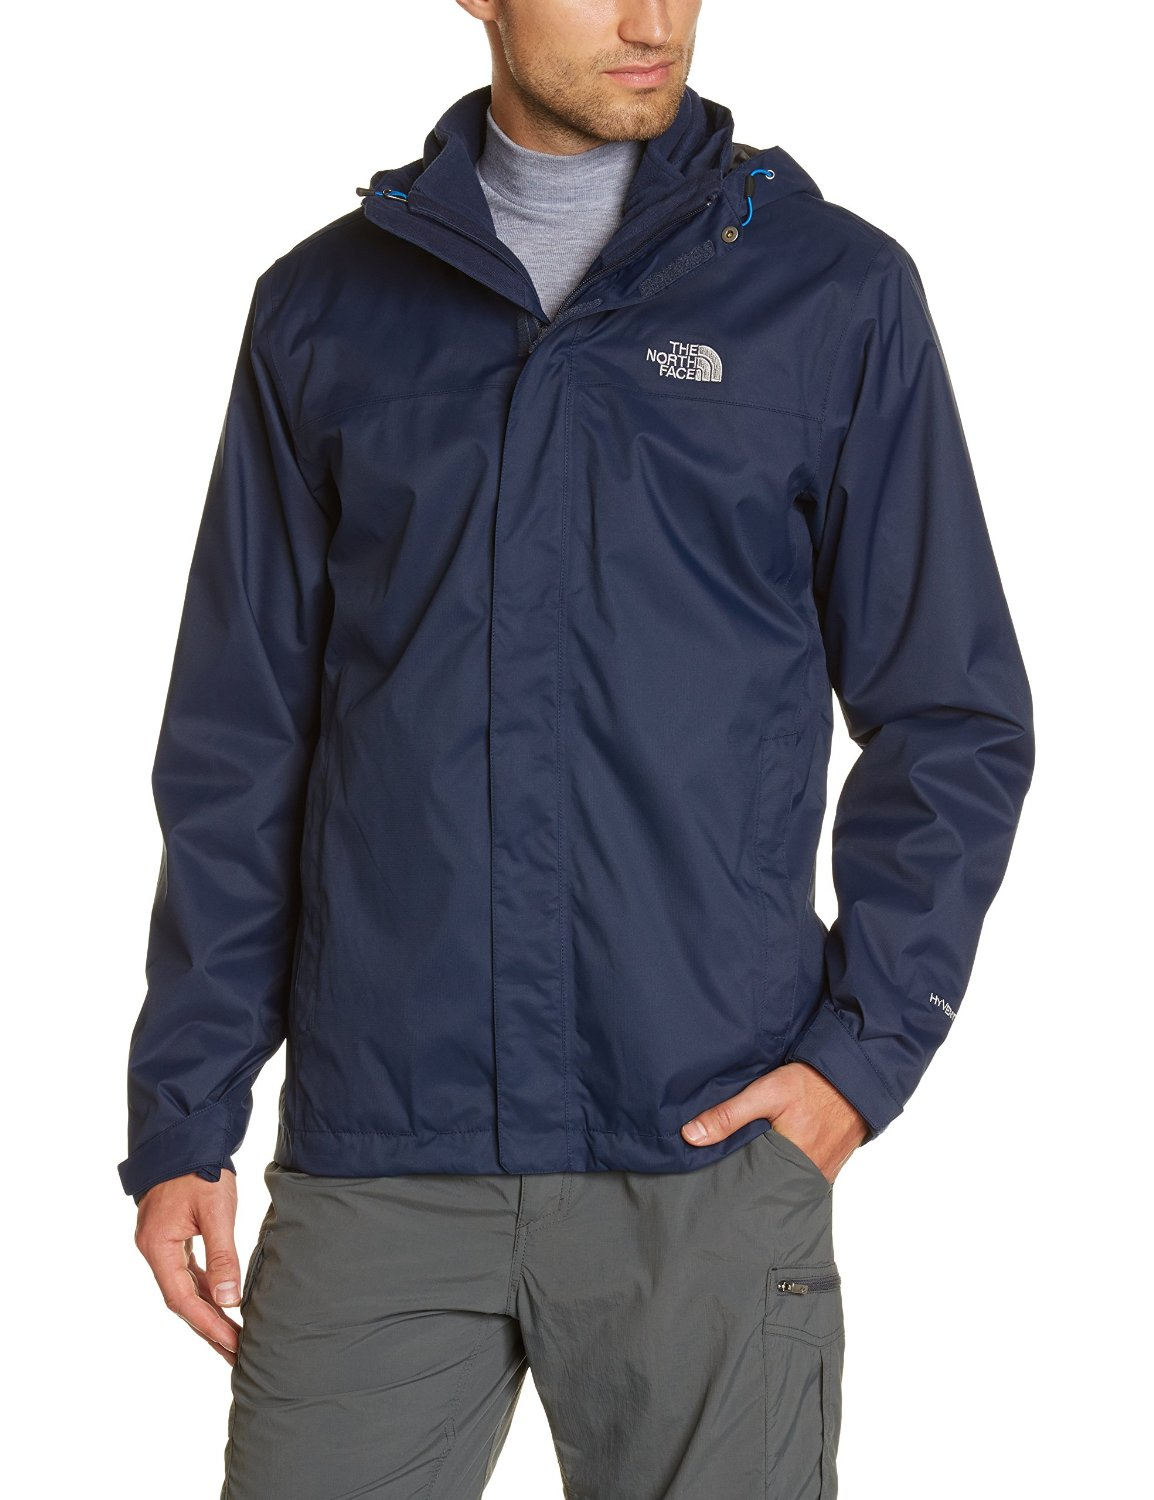 The North Face Evolve II Triclimate, Giacca Impermeabile Uomo